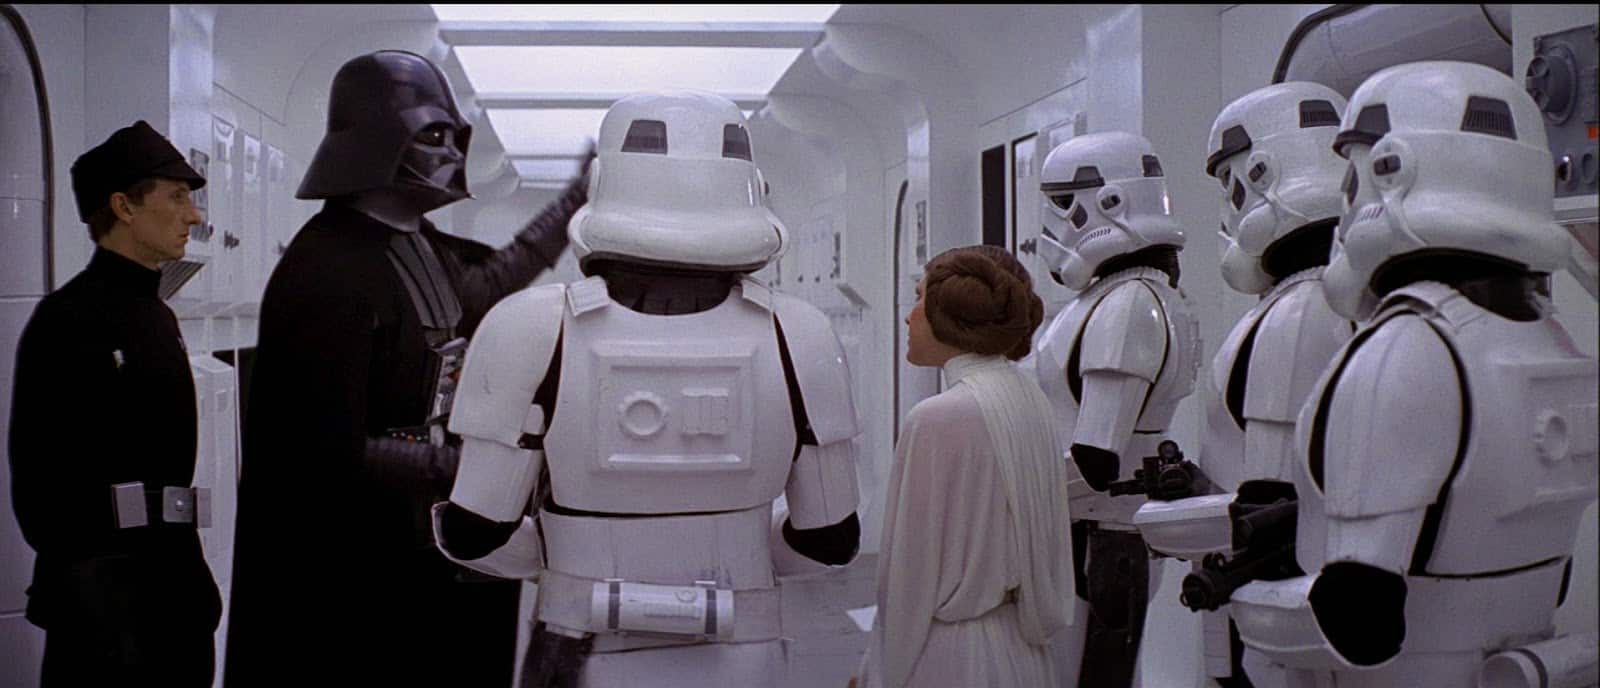 Vader and Stormtroopers with Leia